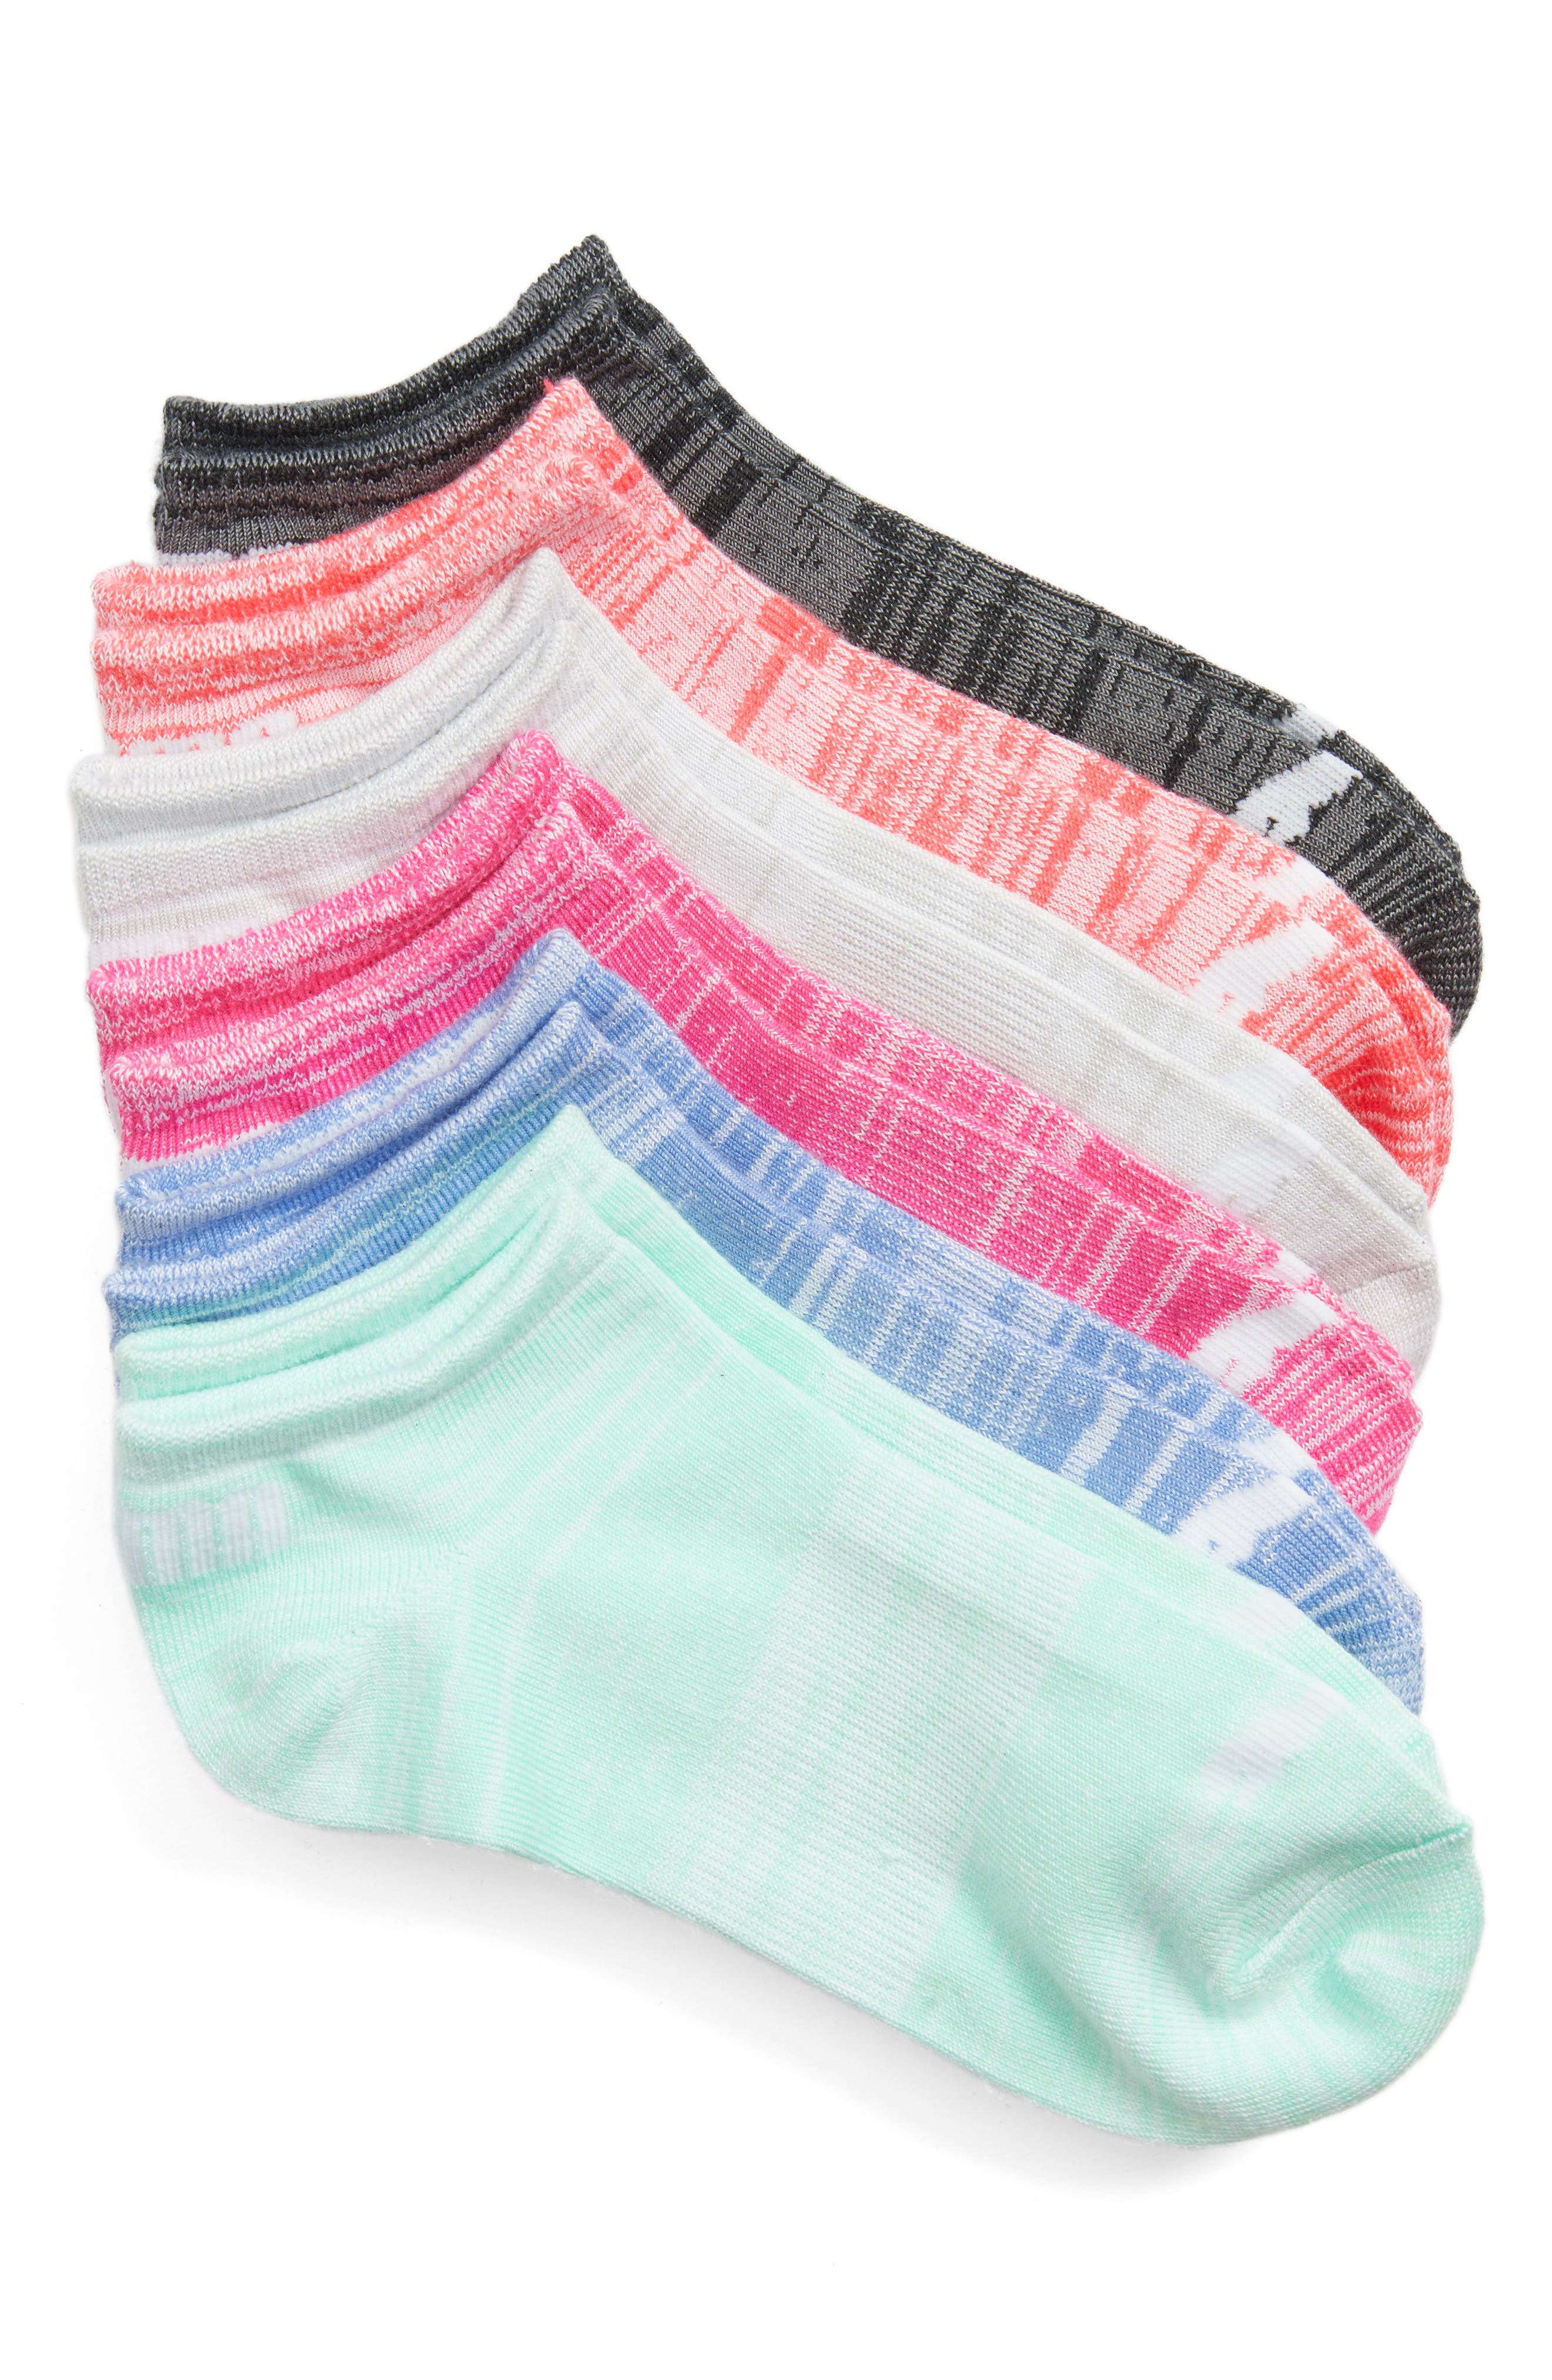 6-Pack No-Show Socks,                         Main,                         color, 650